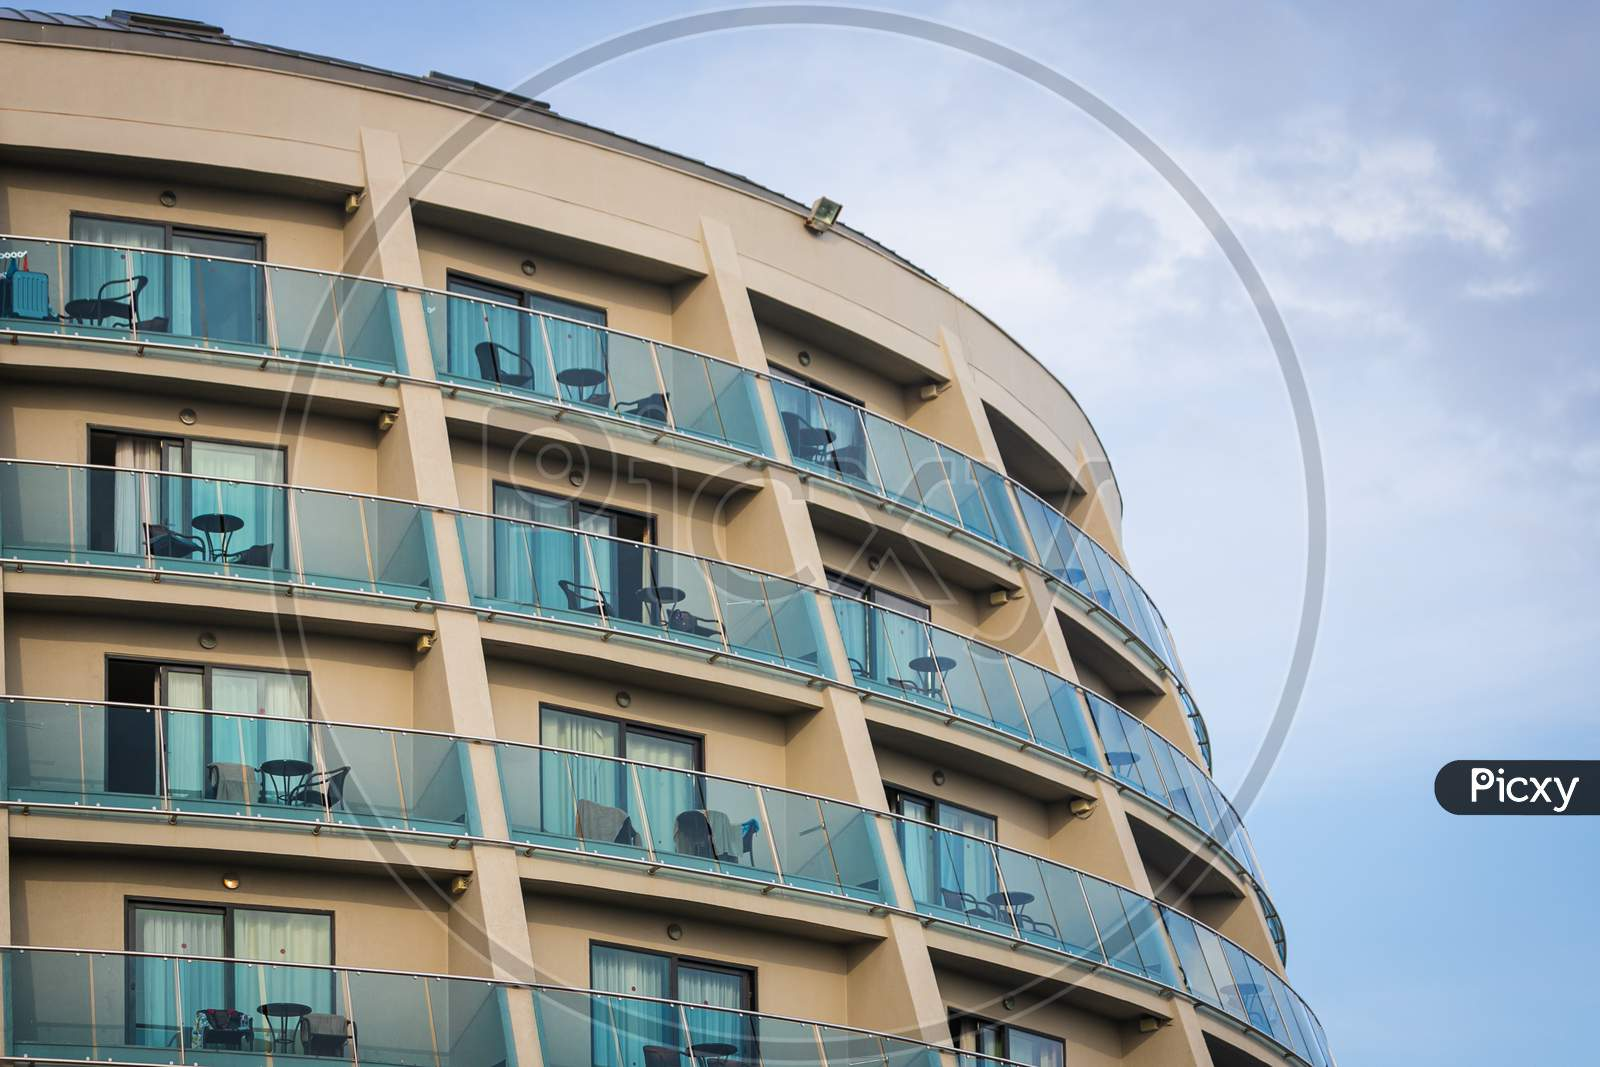 A Residential Building With Flat, Identical Balconies With Ripped Air Conditioners And  Glass. Balcony Pattern